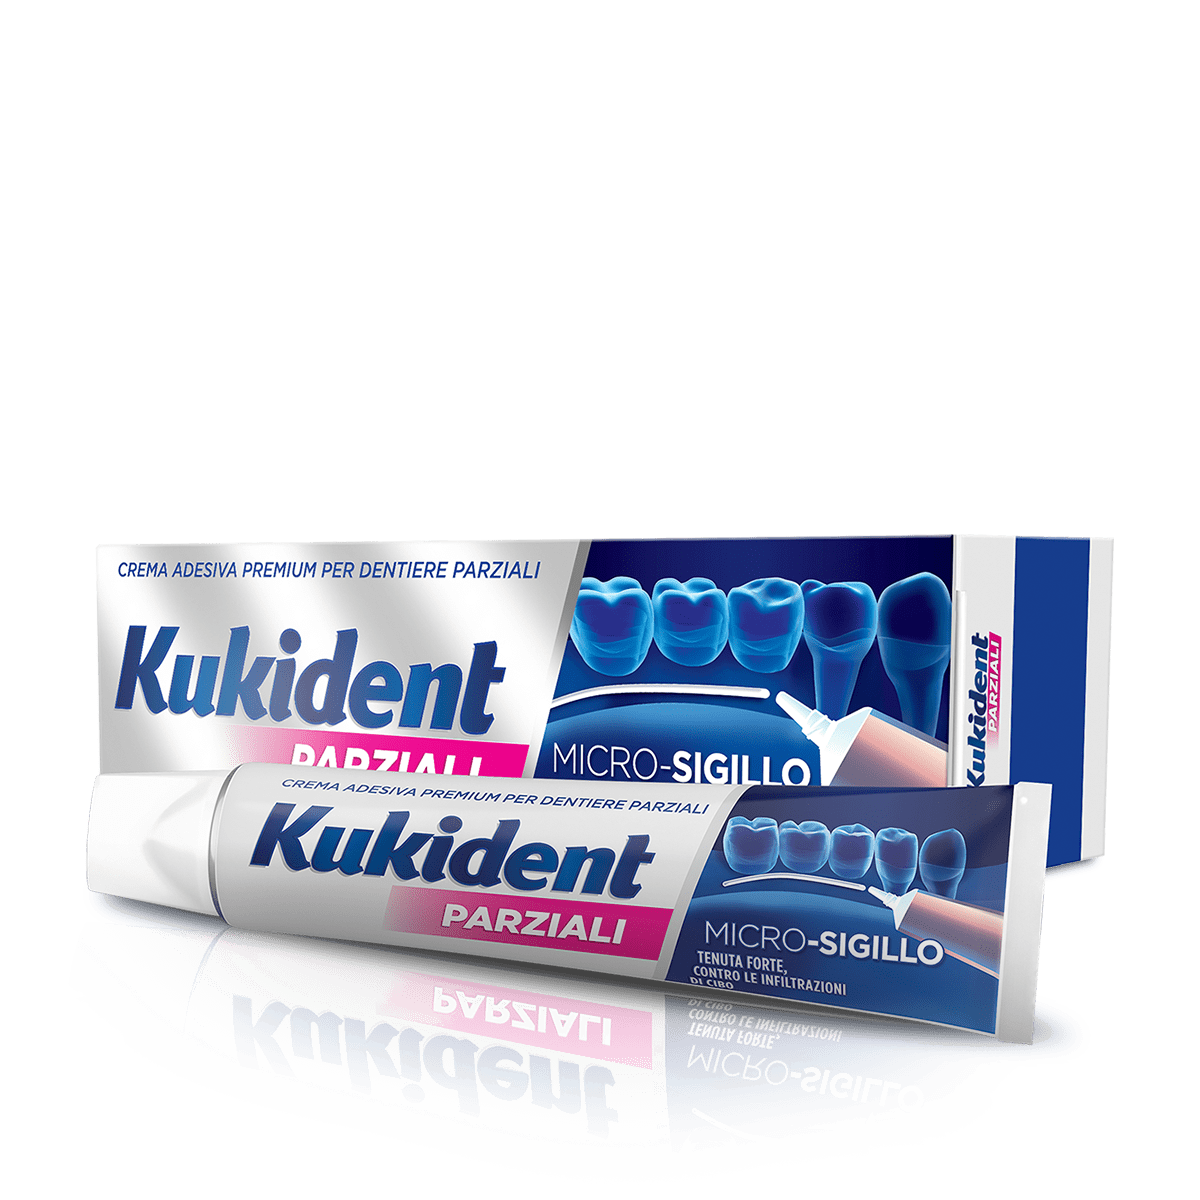 KukidentAdhesive%20Cream%20Partials40gITIn%20%20Out%20of%20Pack20052019%201200x1200v2